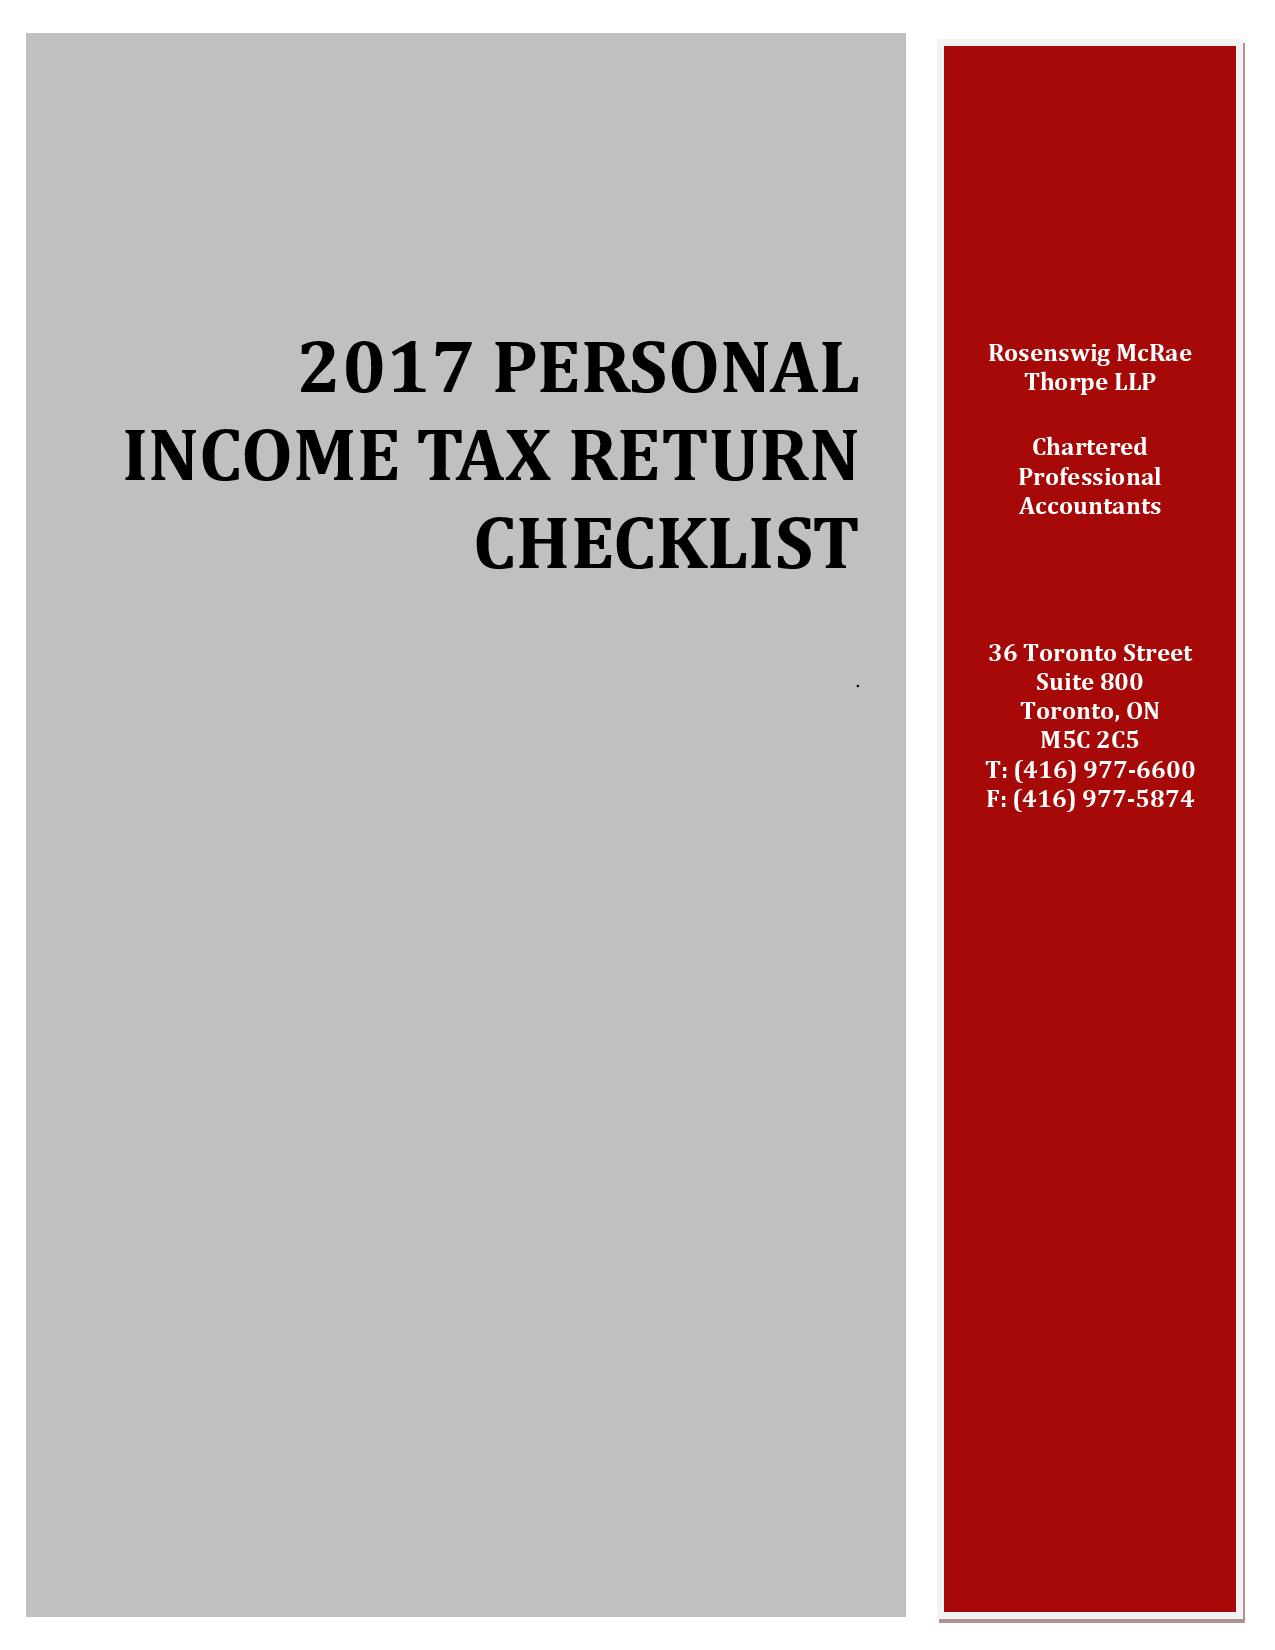 2017 PERSONAL INCOME TAX CHECKLIST (1)-page-001.jpg